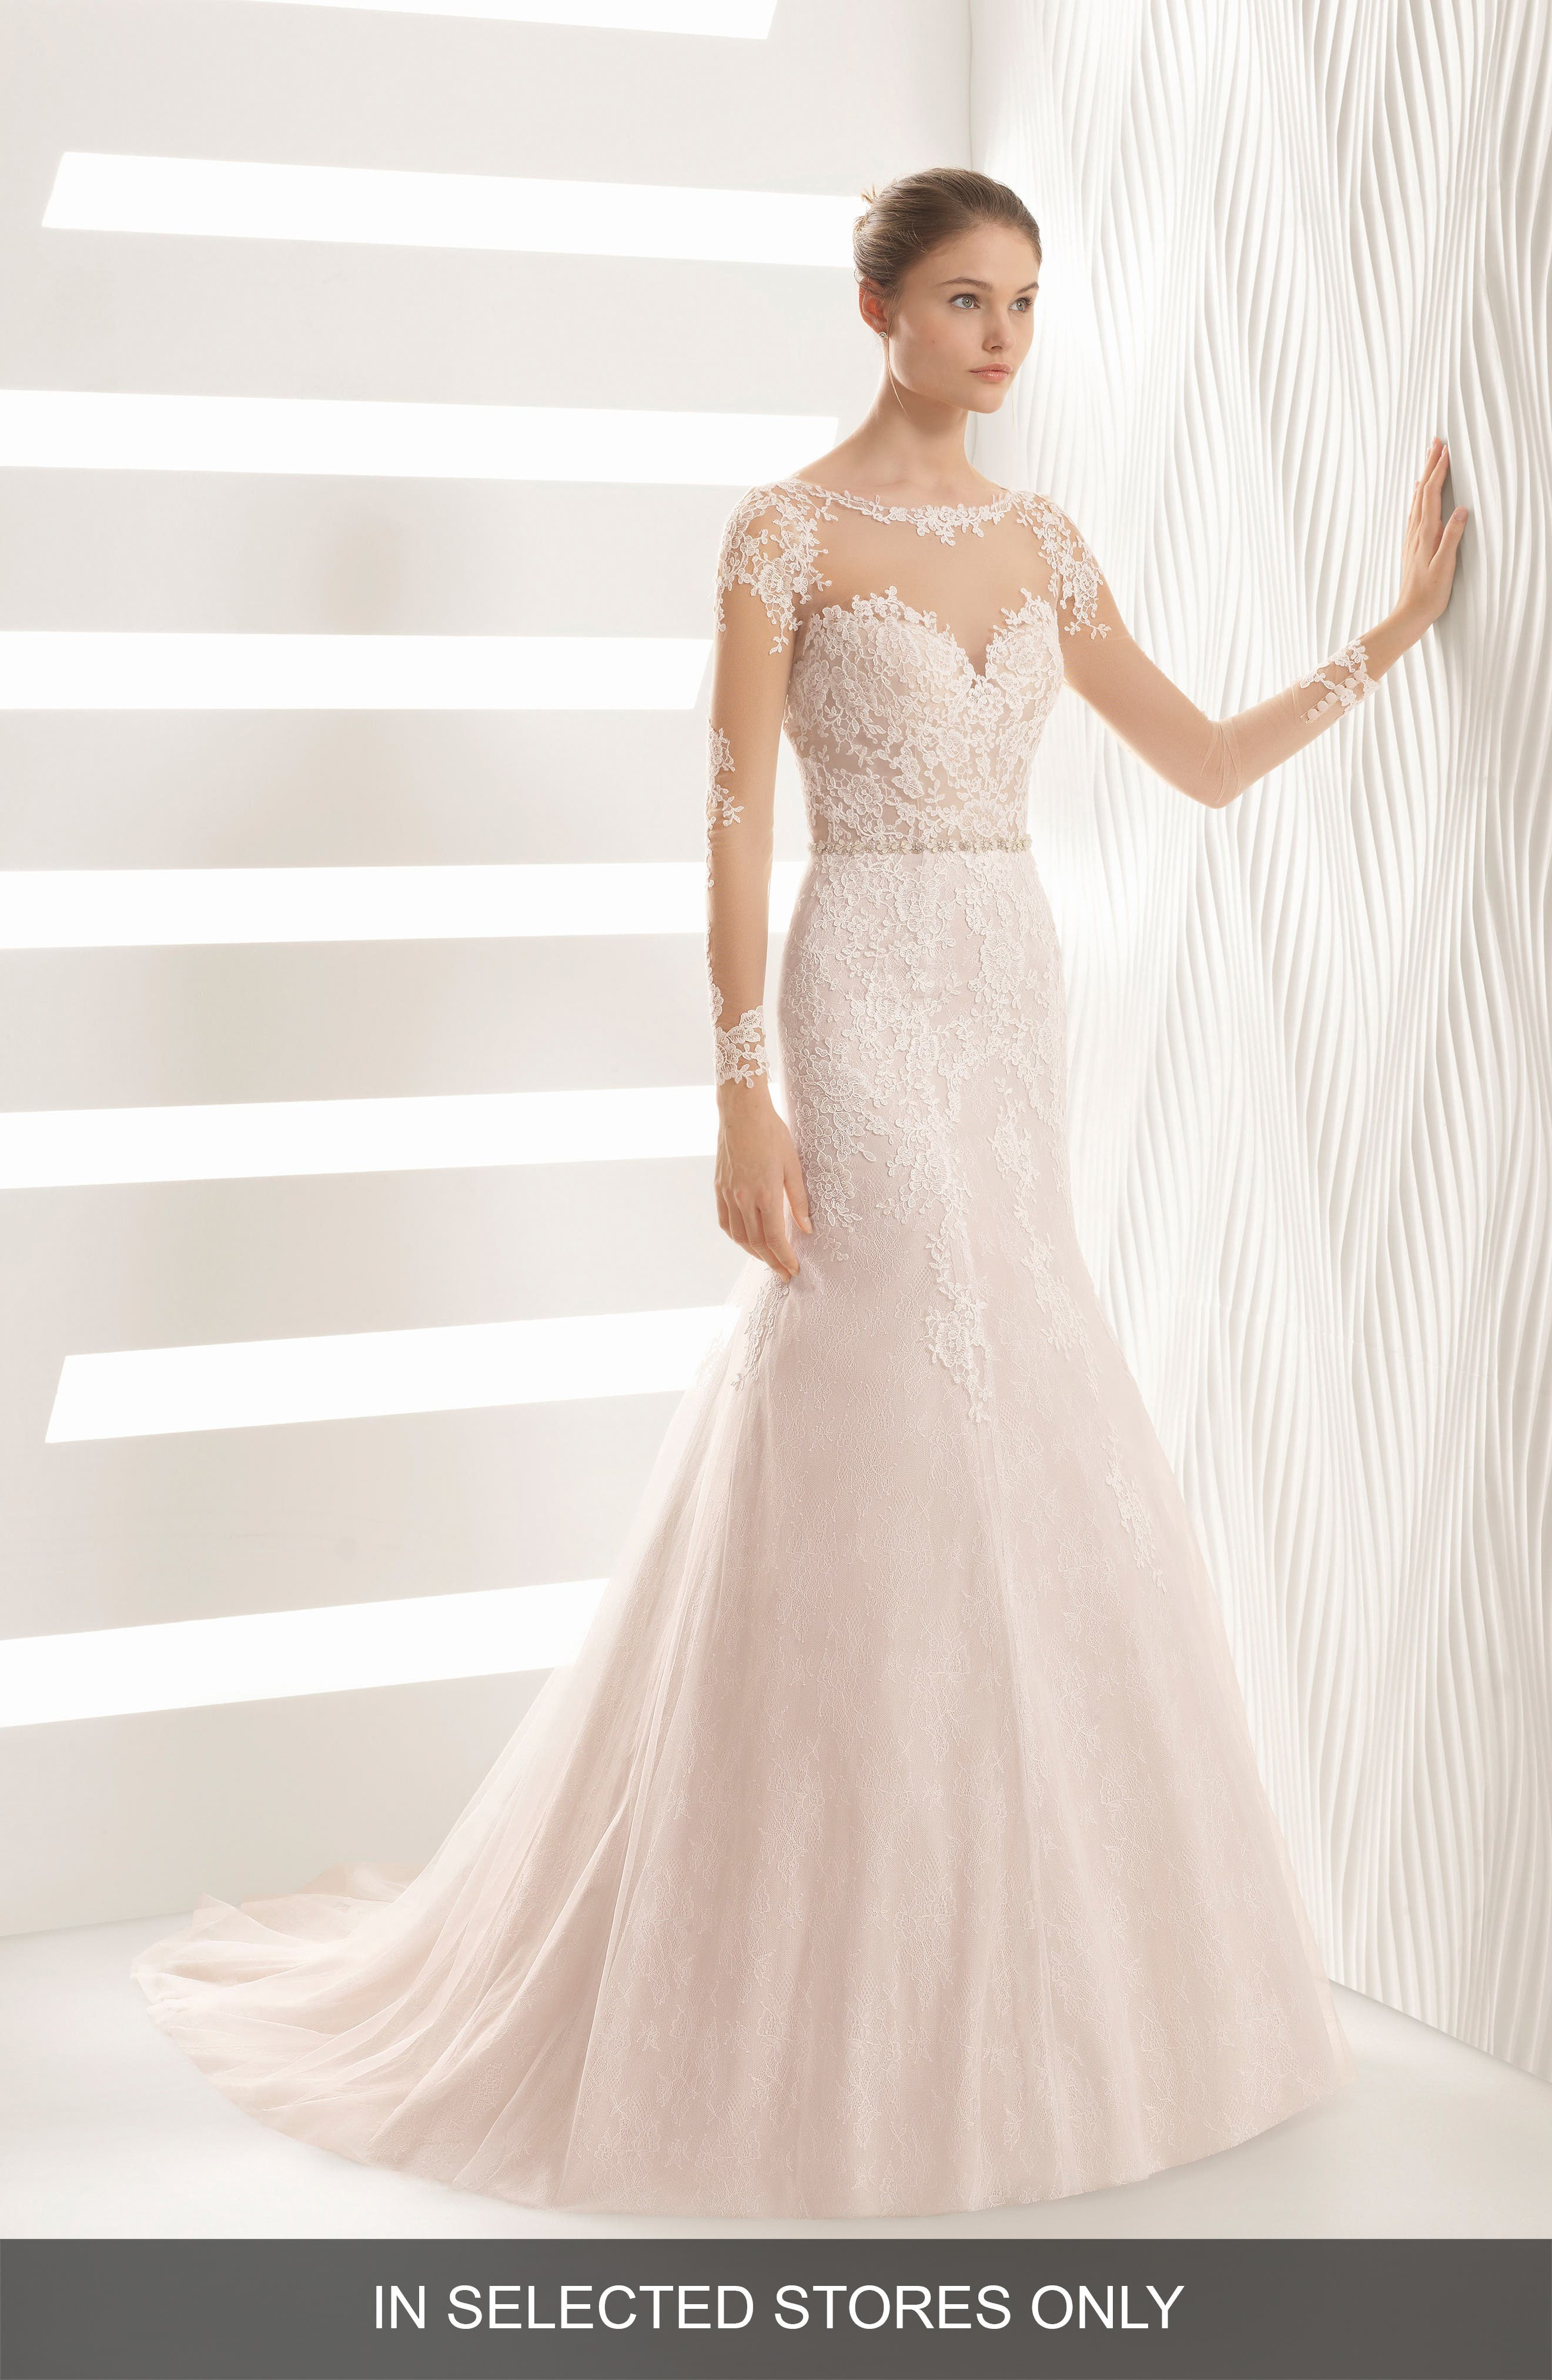 Amor Embroidered Illusion Lace Trumpet Gown,                         Main,                         color, Nude